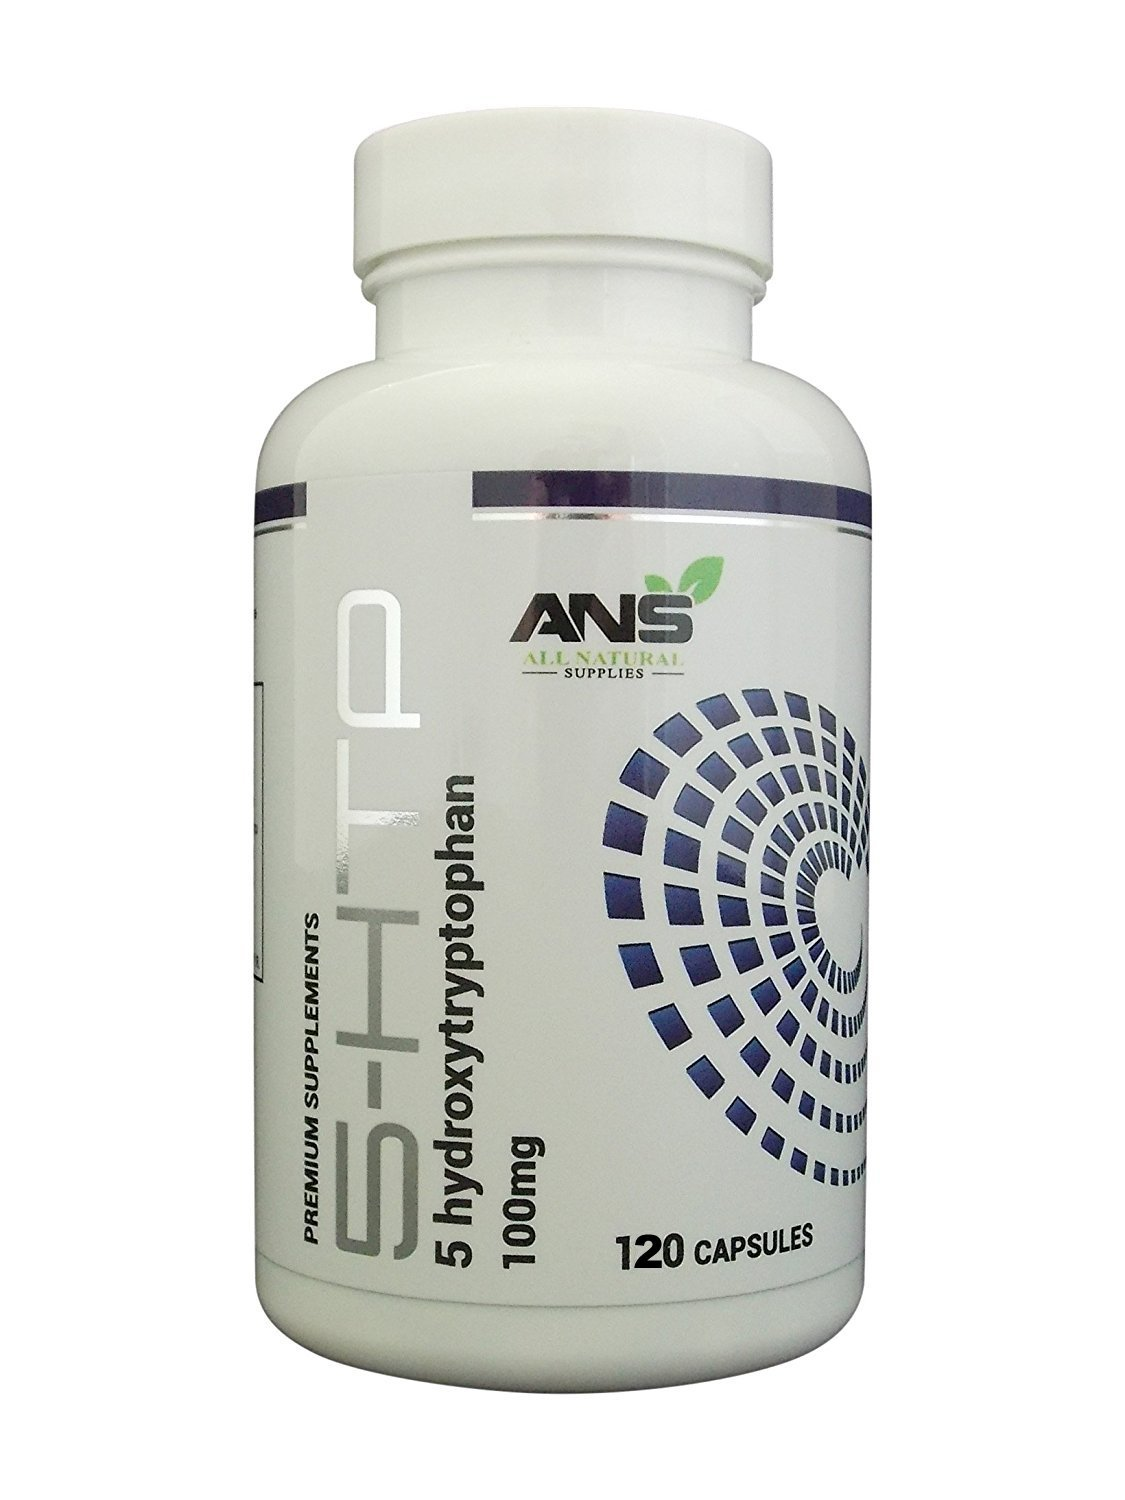 All Natural Supplies 5-htp 100mg - 120 high strength vegetarian capsules  per bottle - 4 month supply